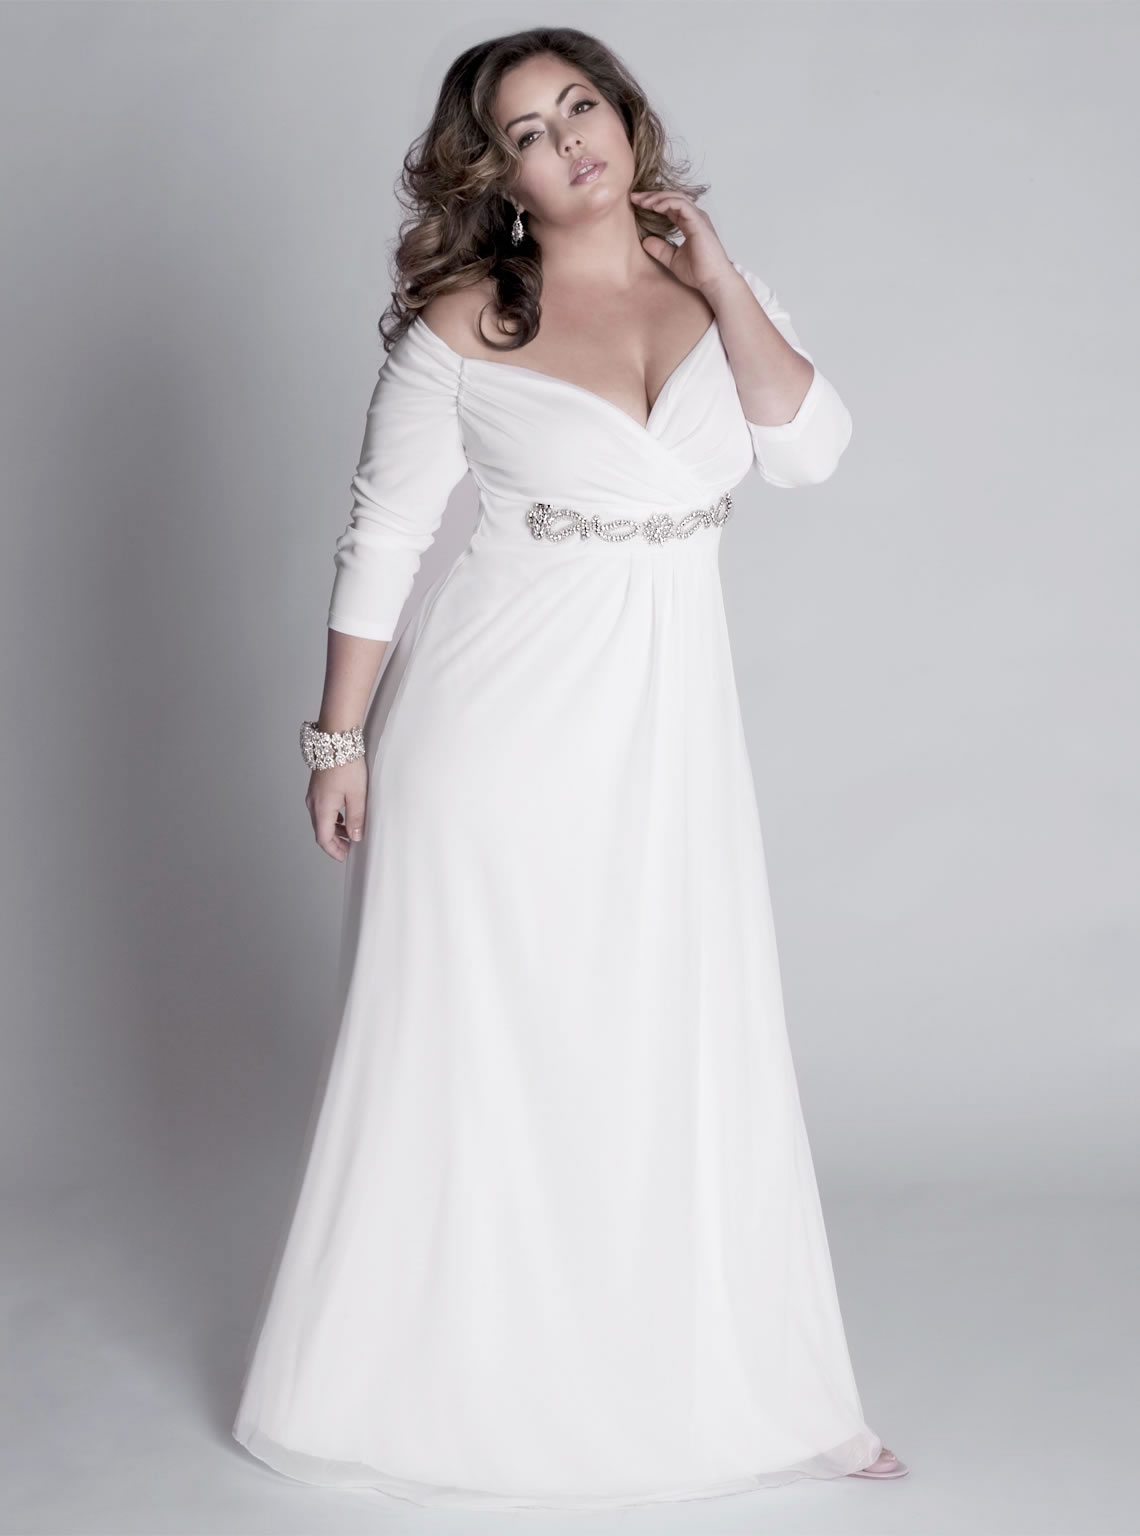 Elegant fall plus size wedding dresses with sleeves for for Plus size short wedding dresses with sleeves